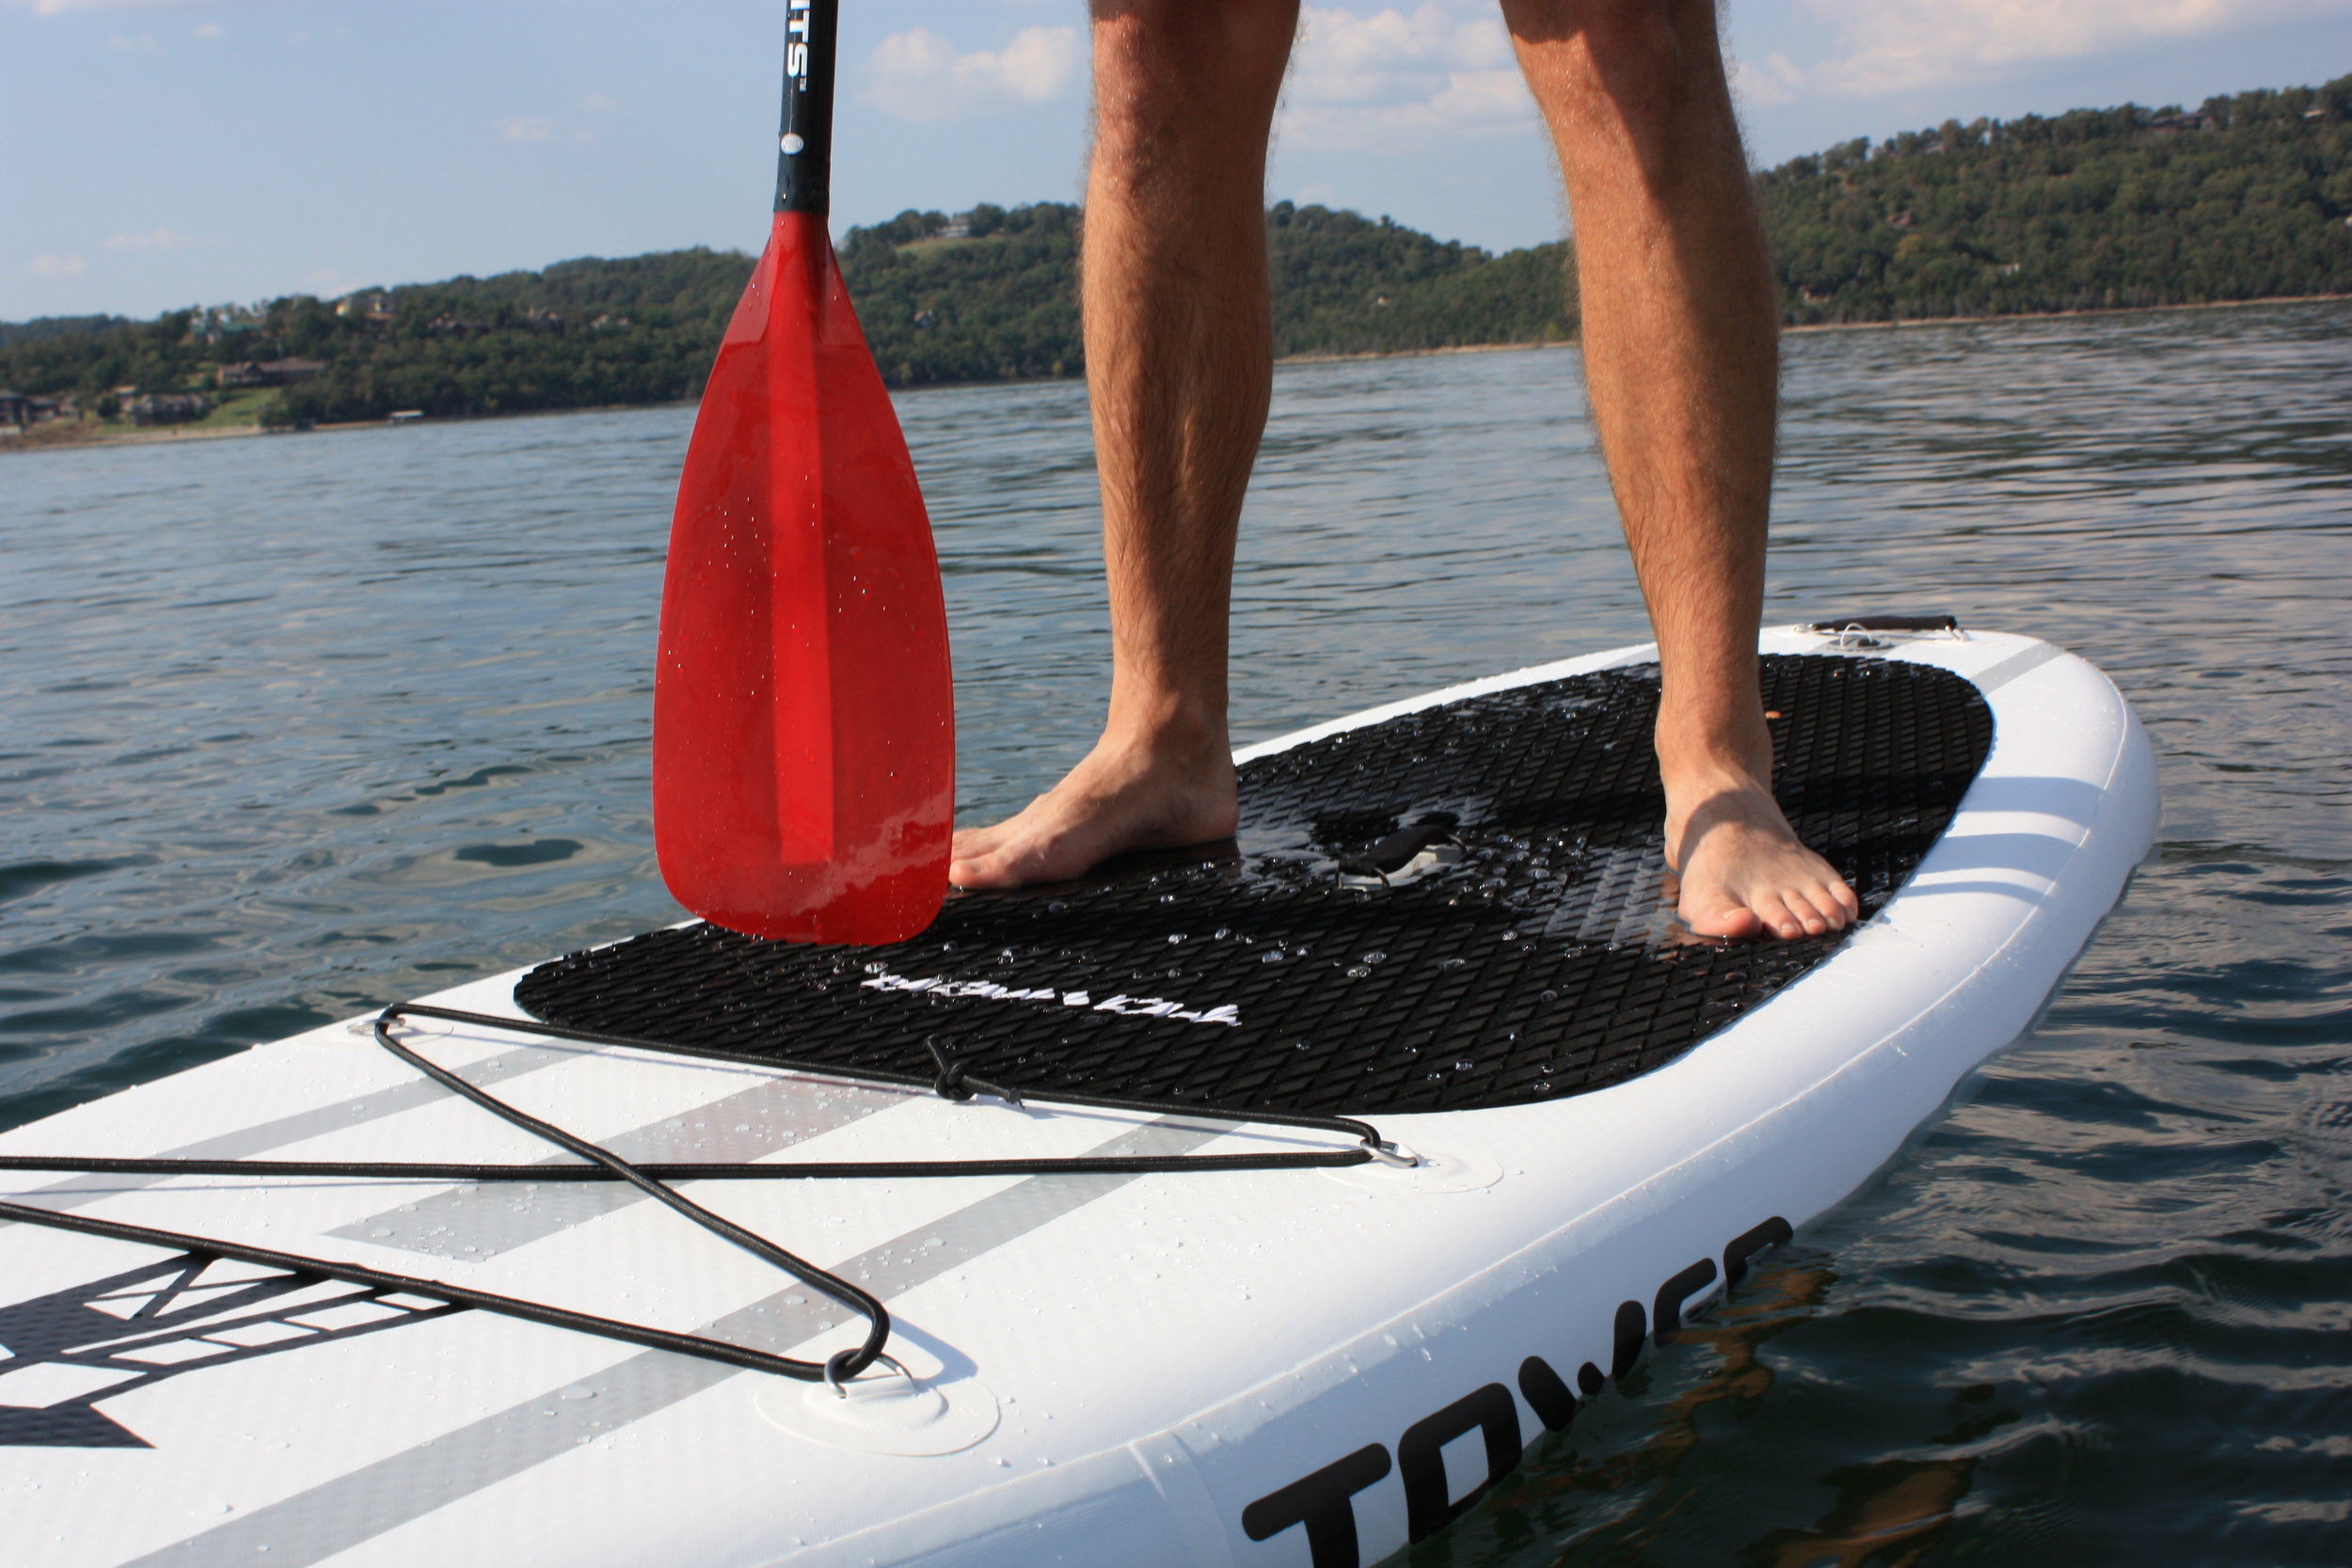 "Tower Inflatable SUPs - All the performance of a plastic/epoxy SUP but with none of the transportation headaches! Each Tower SUP rolls up into a compact bundle that will fit in any vehicle. When you arrive at your destination, simply unroll the SUP, attach the pump to the grey valve in the rear, and air it up to between 10-15 PSI. You'll be standing on air, but won't even know it!  Includes a hand-pump, which takes 5-10 minutes to inflate the SUP to capacity. We also have a car-charger powered electric pump for rent for an additional change.  When your day on the water is finished, simply deflate the sup, roll it up from the bow to the stern, and attach the storage strap. Adventurer 1 iSUP  (Length: 9'10"", Weight: 24 lbs, Weight capacity: 300 lbs)  Adventurer 2 iSUP  (Length: 10'4"", Weight: 25 lbs, Weight capacity: 350 lbs)"